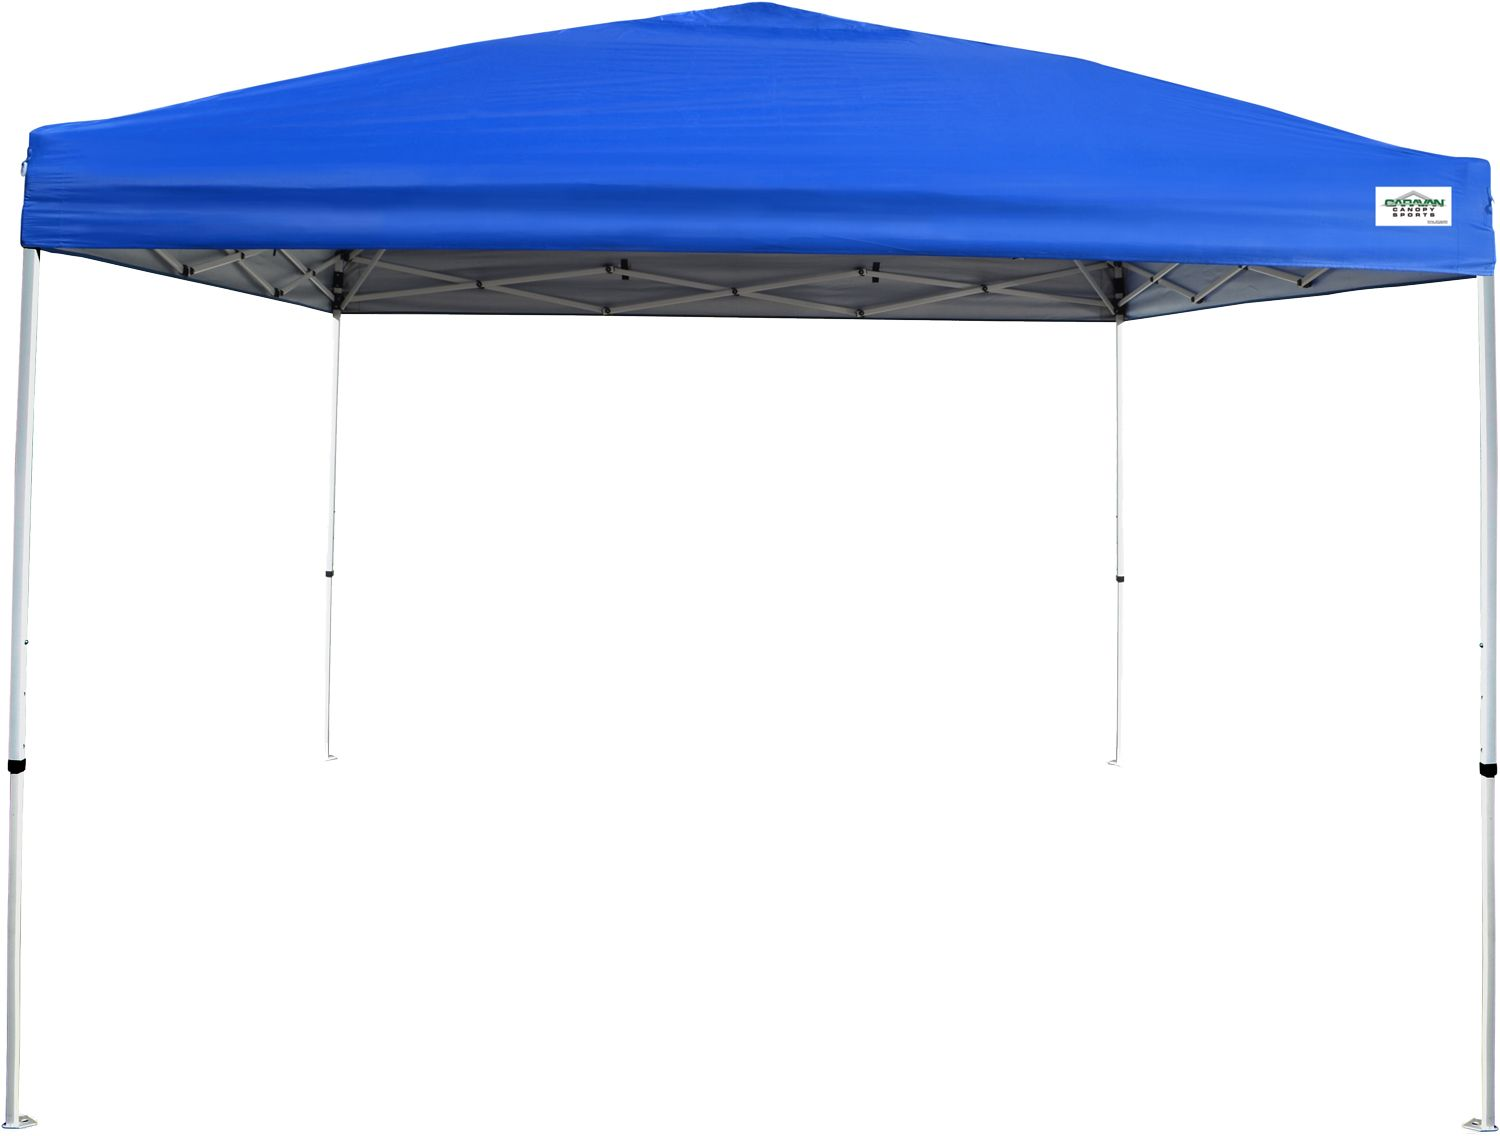 Product Image · Caravan Canopy V-Series 2 Pro 10u0027 x 10u0027 Straight Leg Canopy  sc 1 st  DICKu0027S Sporting Goods & Caravan Canopies | Best Price Guarantee at DICKu0027S